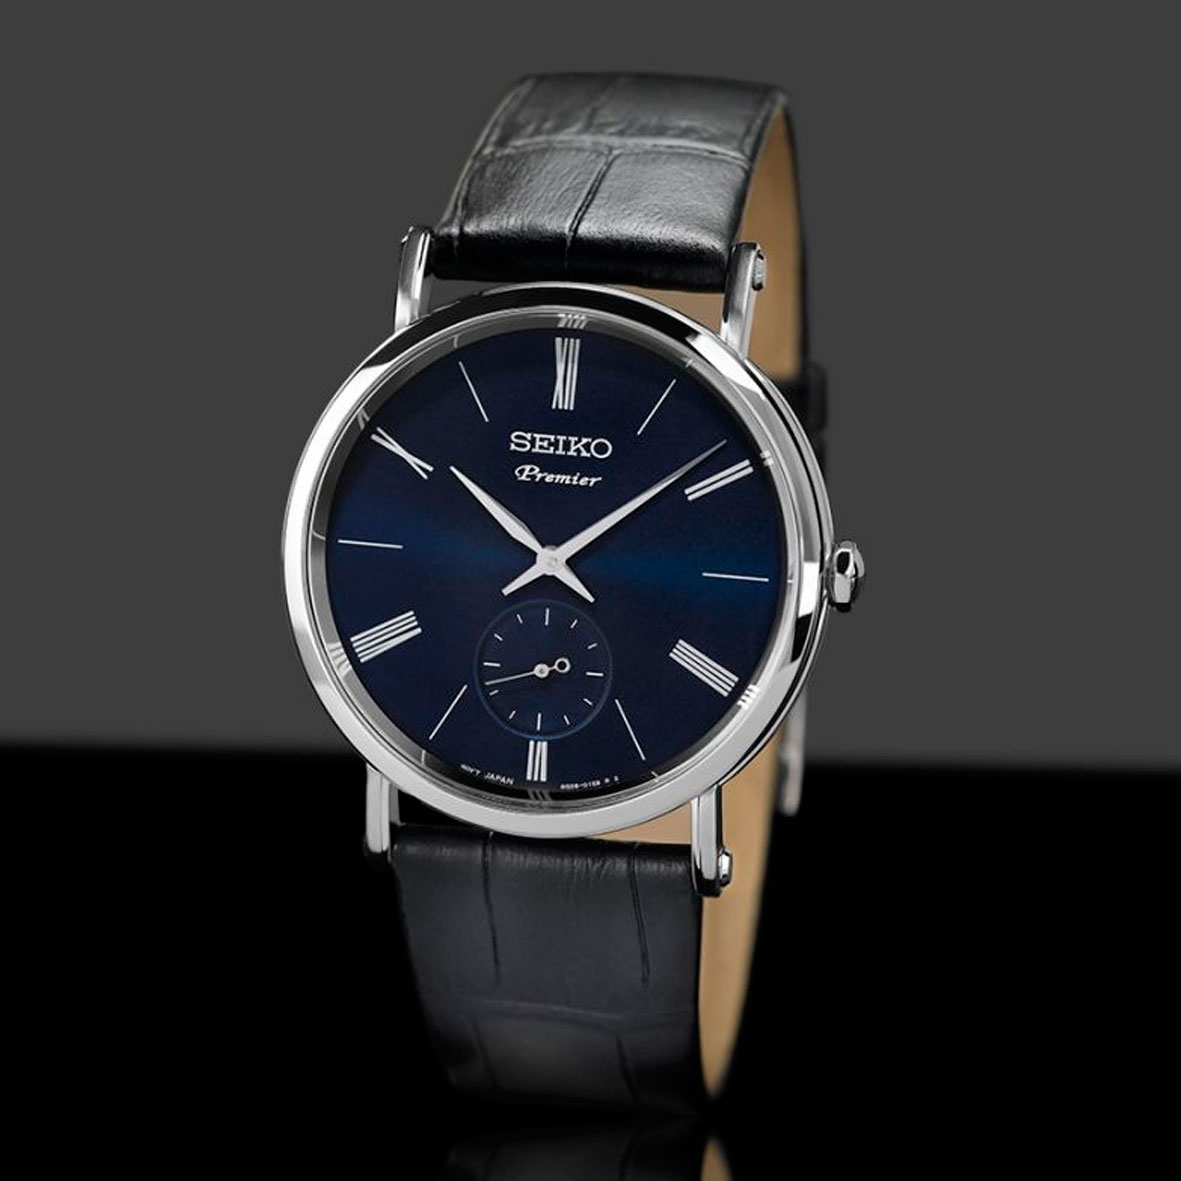 montre seiko premier srk037p1 cadran bleu. Black Bedroom Furniture Sets. Home Design Ideas